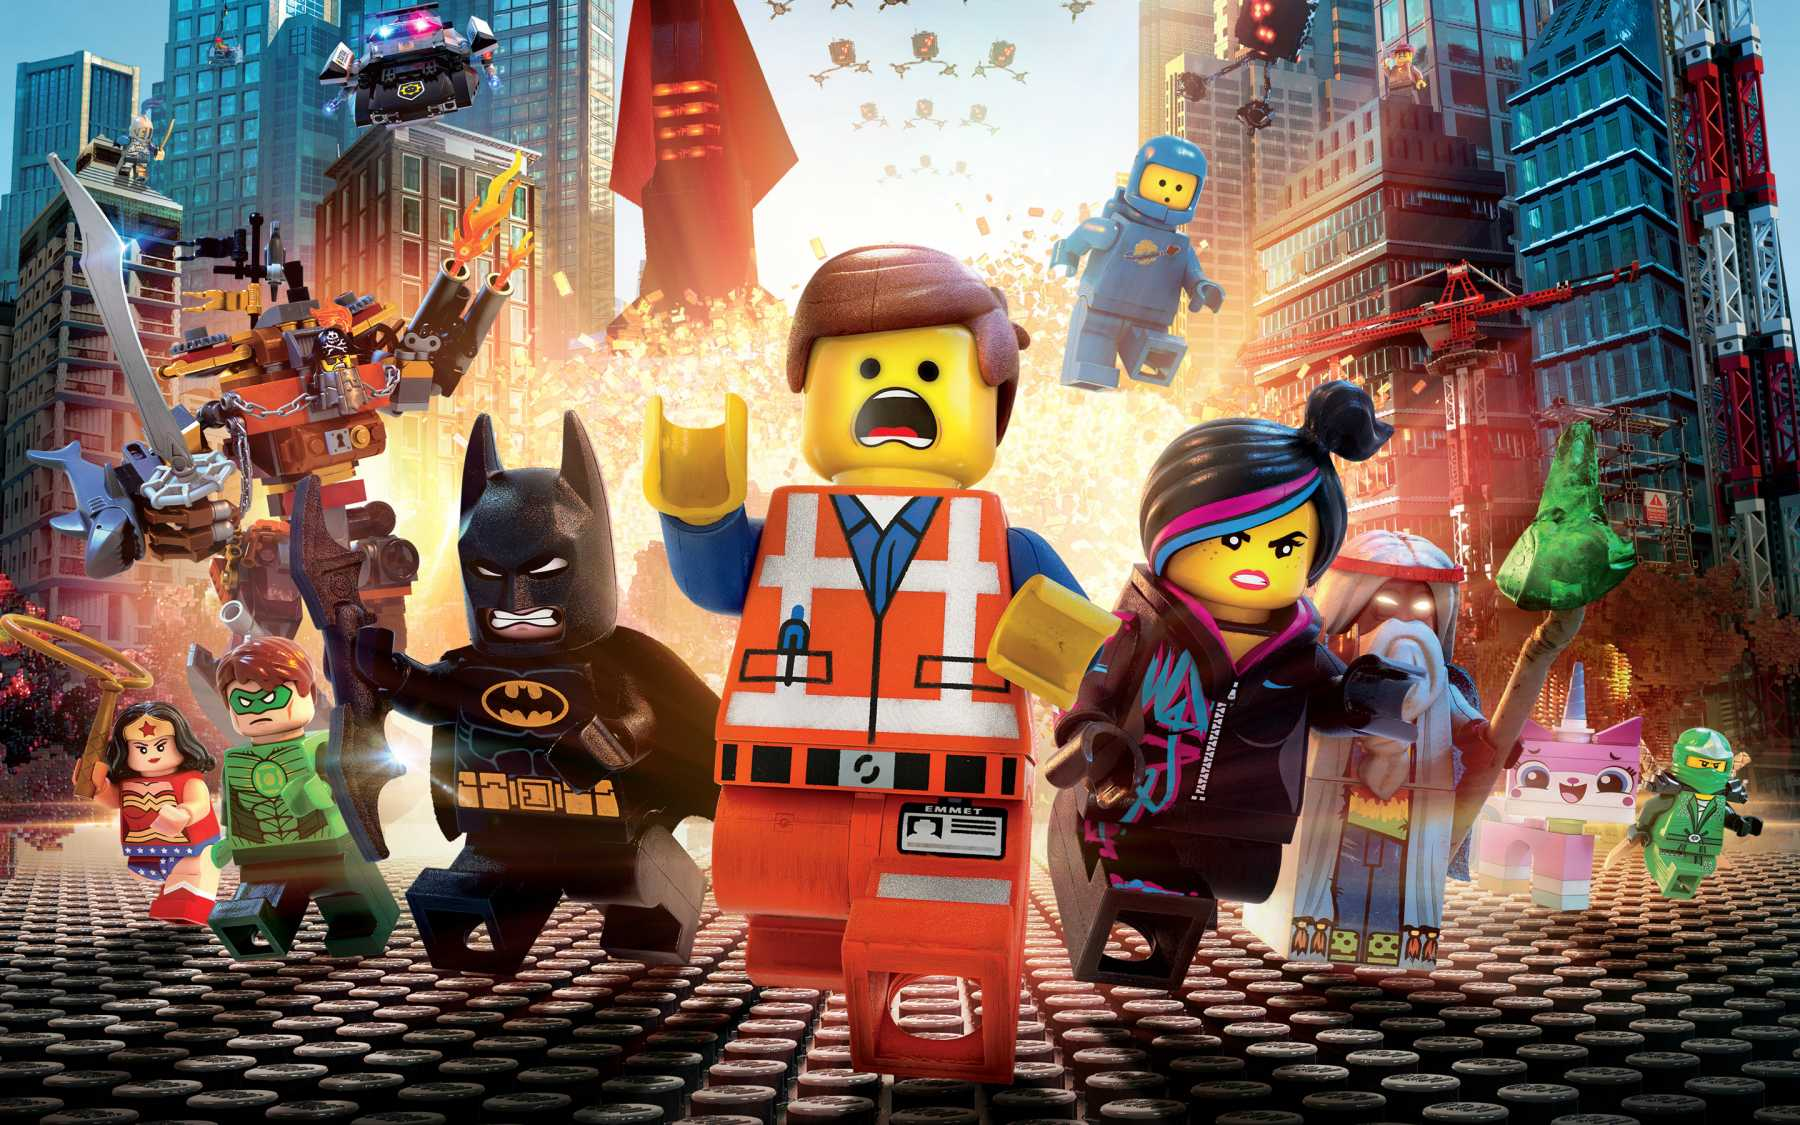 A Director Steps Up To Helm The Sequel To The Blockbuster Hit, The Lego Movie